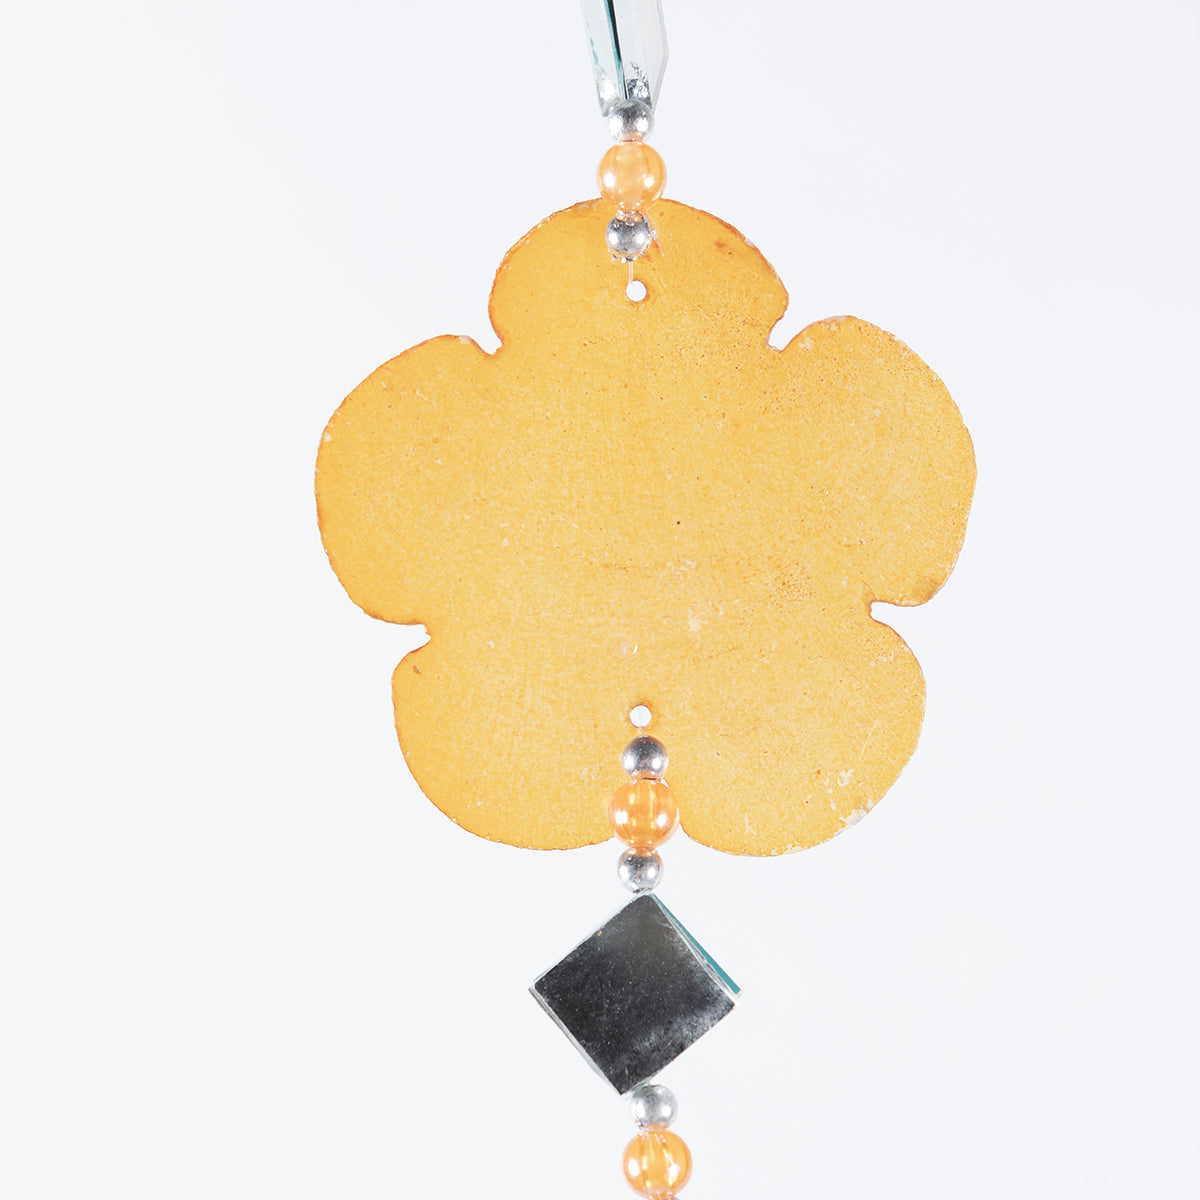 CAPIZ SHELL HANGER WITH MIRROR MULTI FLOWER